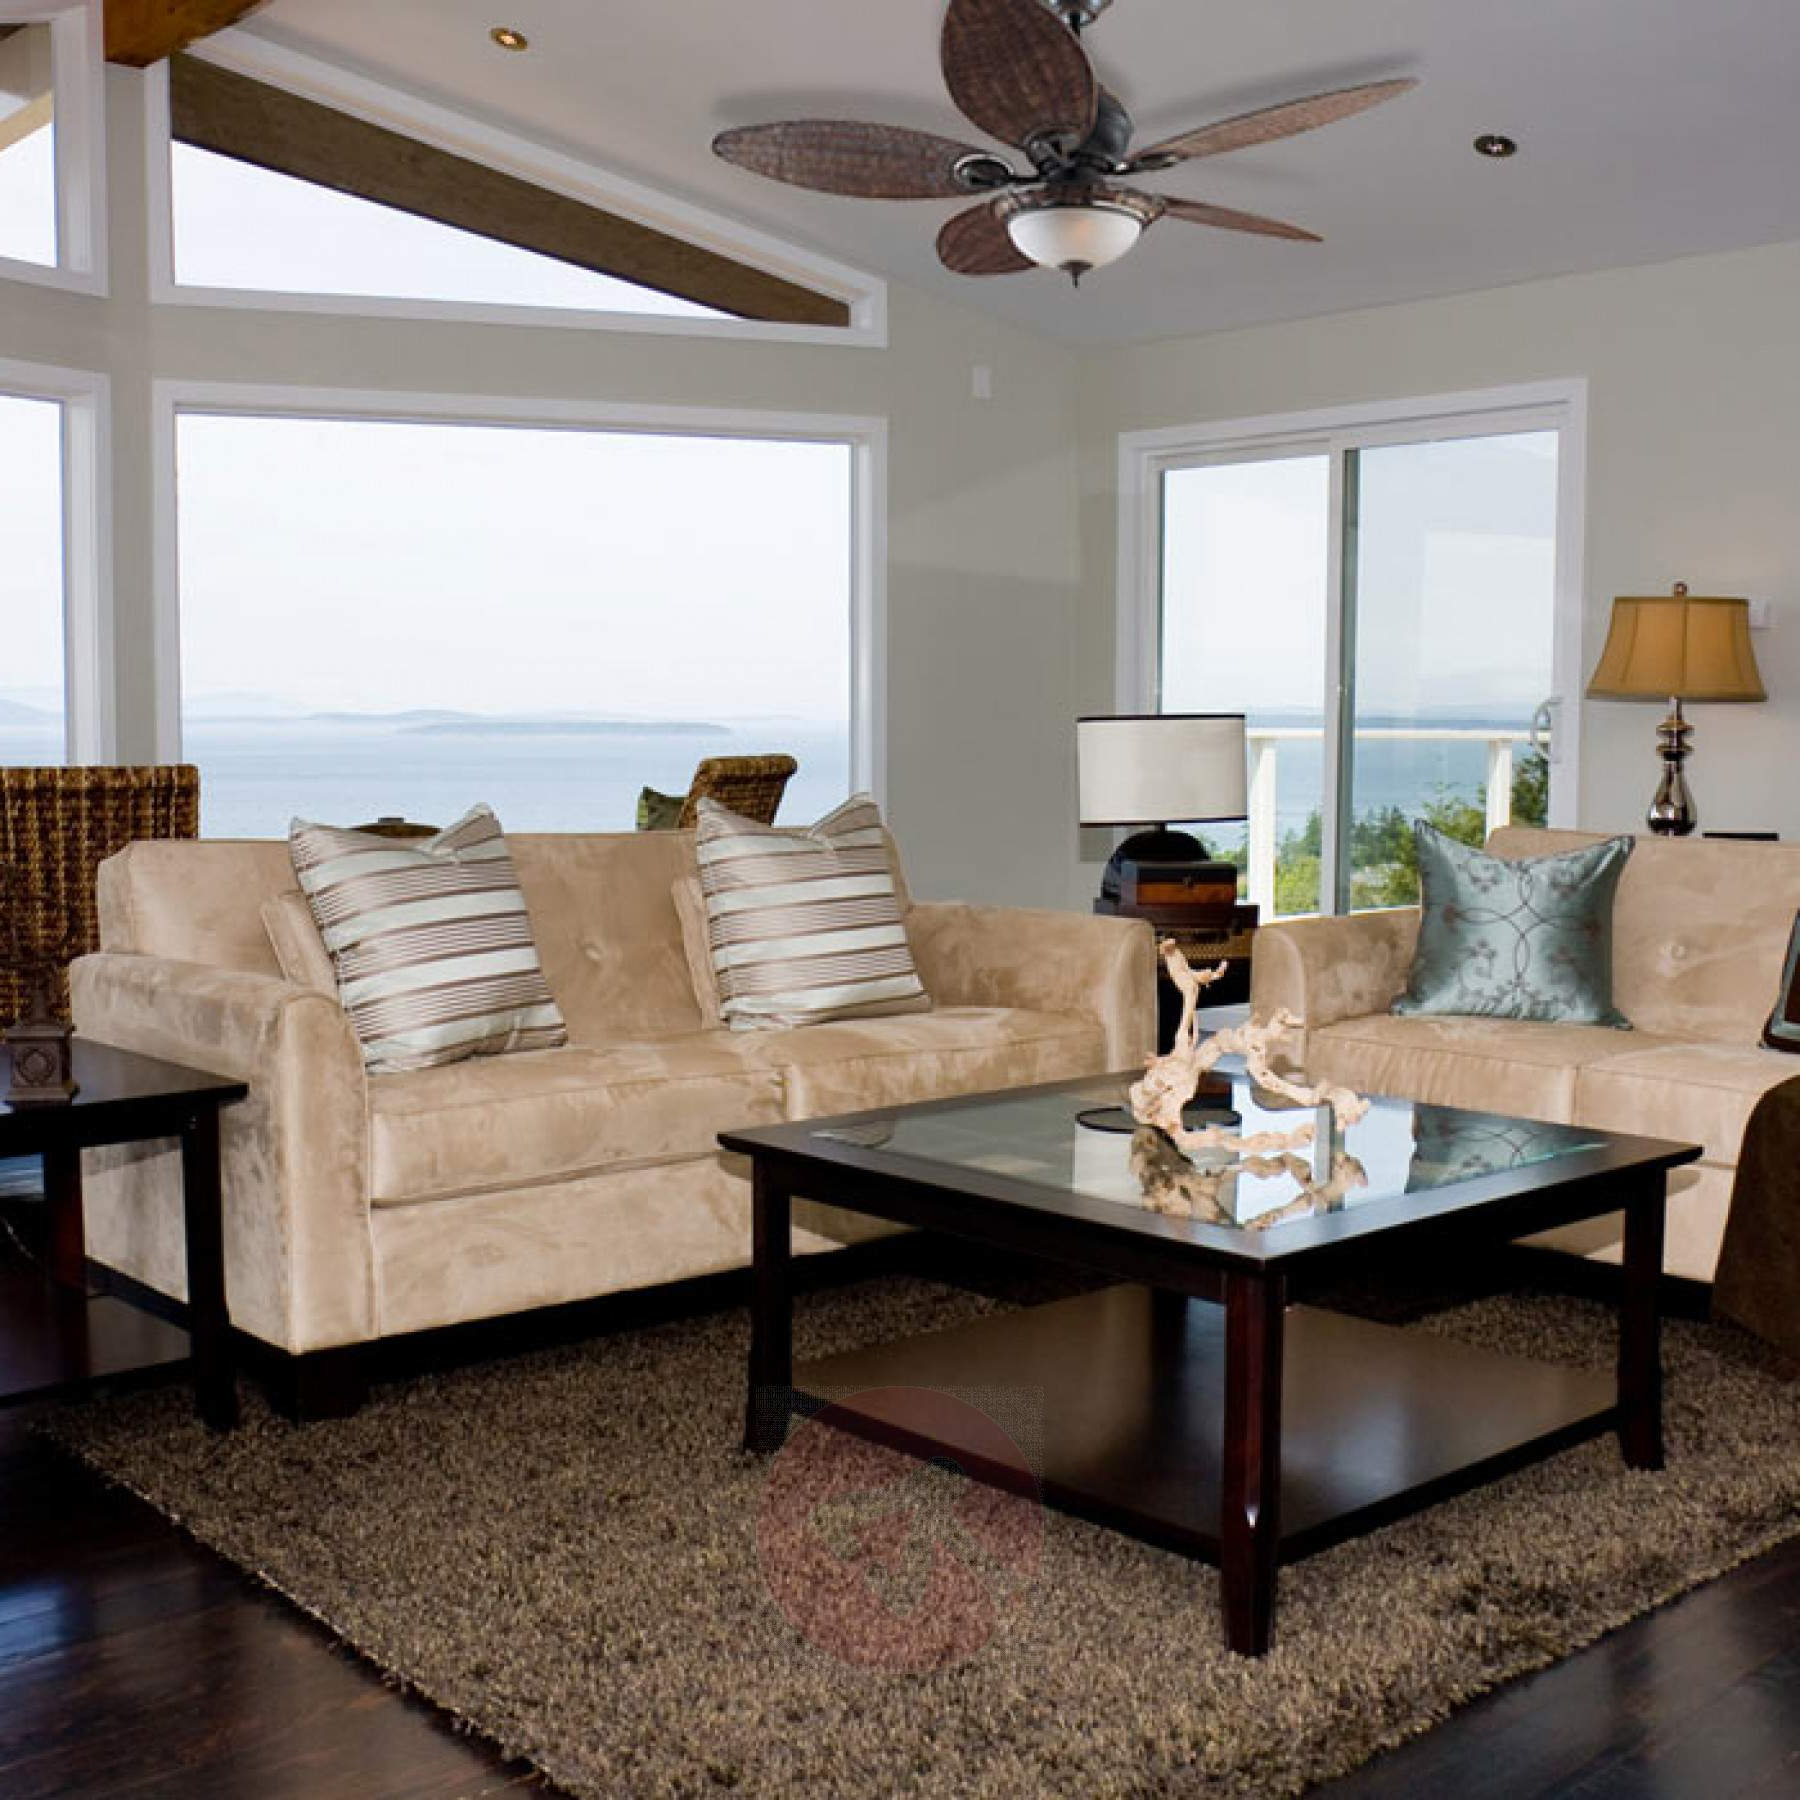 Latest Caribbean Breeze 5 Blade Ceiling Fans Intended For Hunter Caribbean Breeze Ceiling Fan (View 12 of 20)